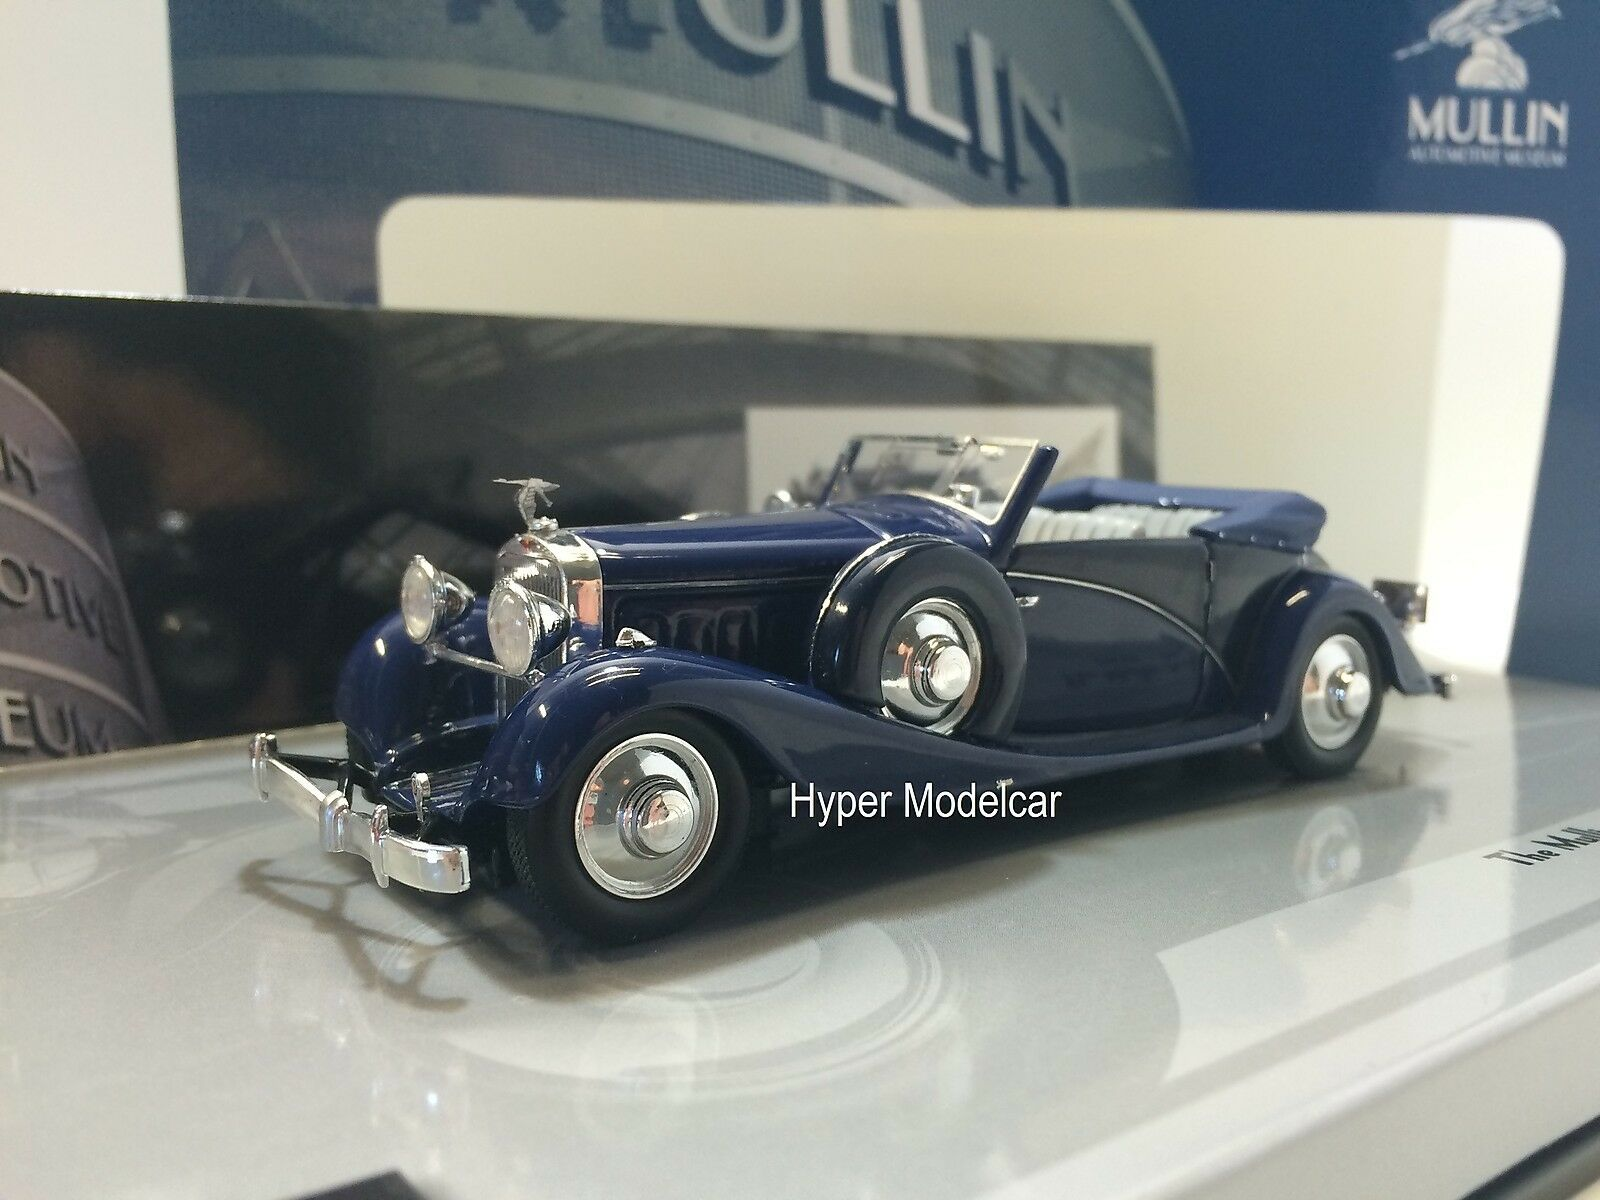 MINICHAMPS 1 43 Hispano Suiza J12 Cabriolet 1935 bleu The Mullin Art. 43709030